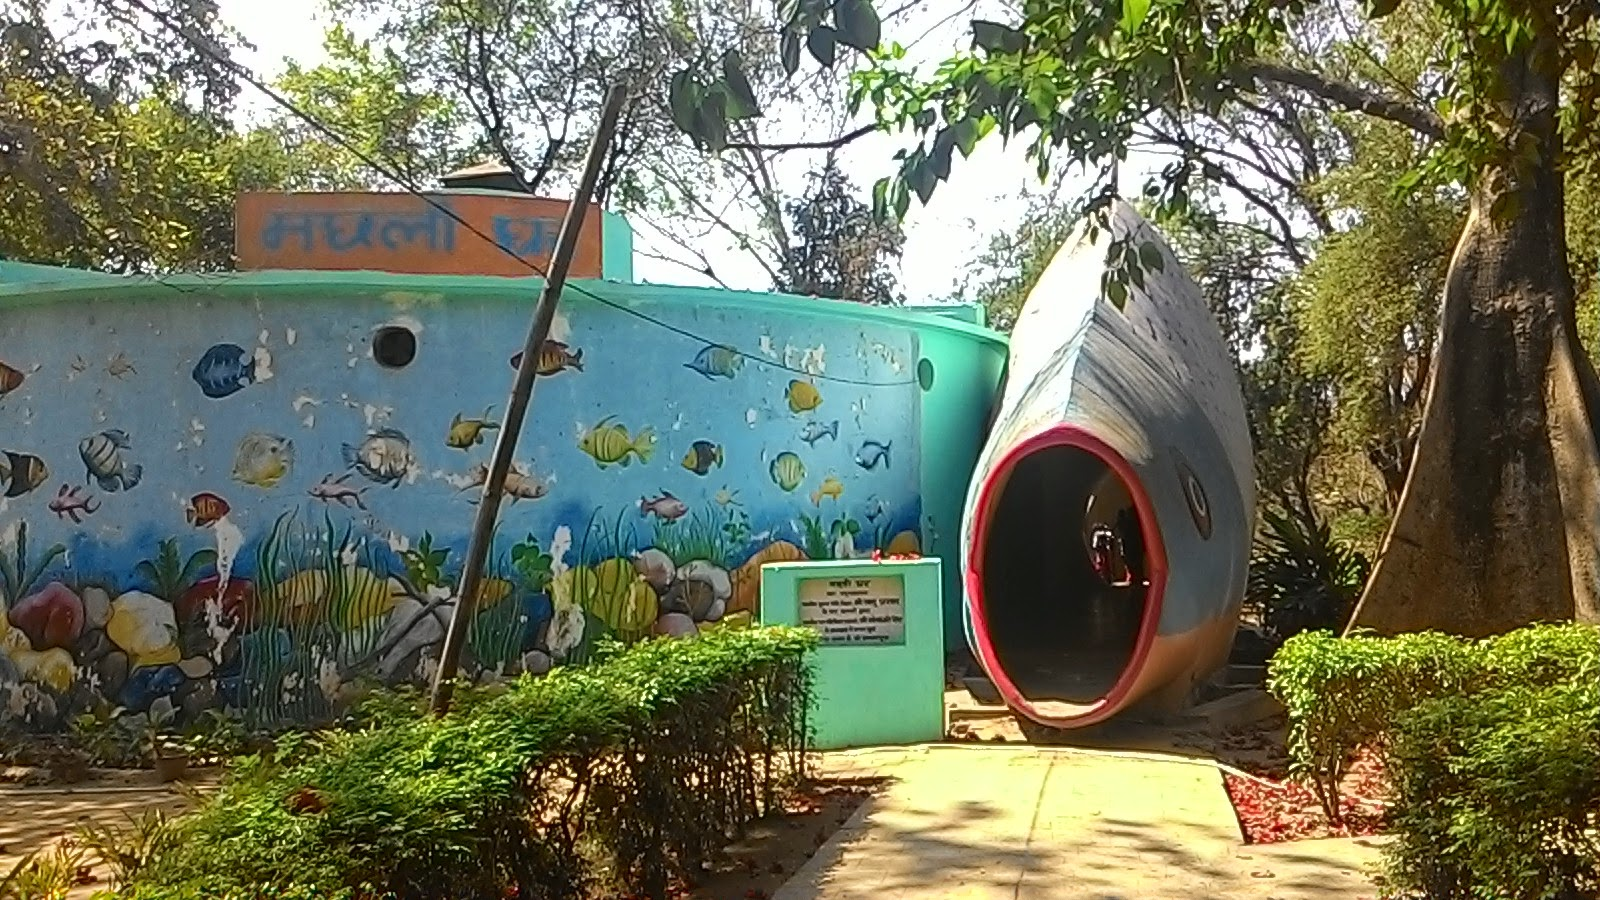 Aquarium ( Machhli Ghar) at patna zoo